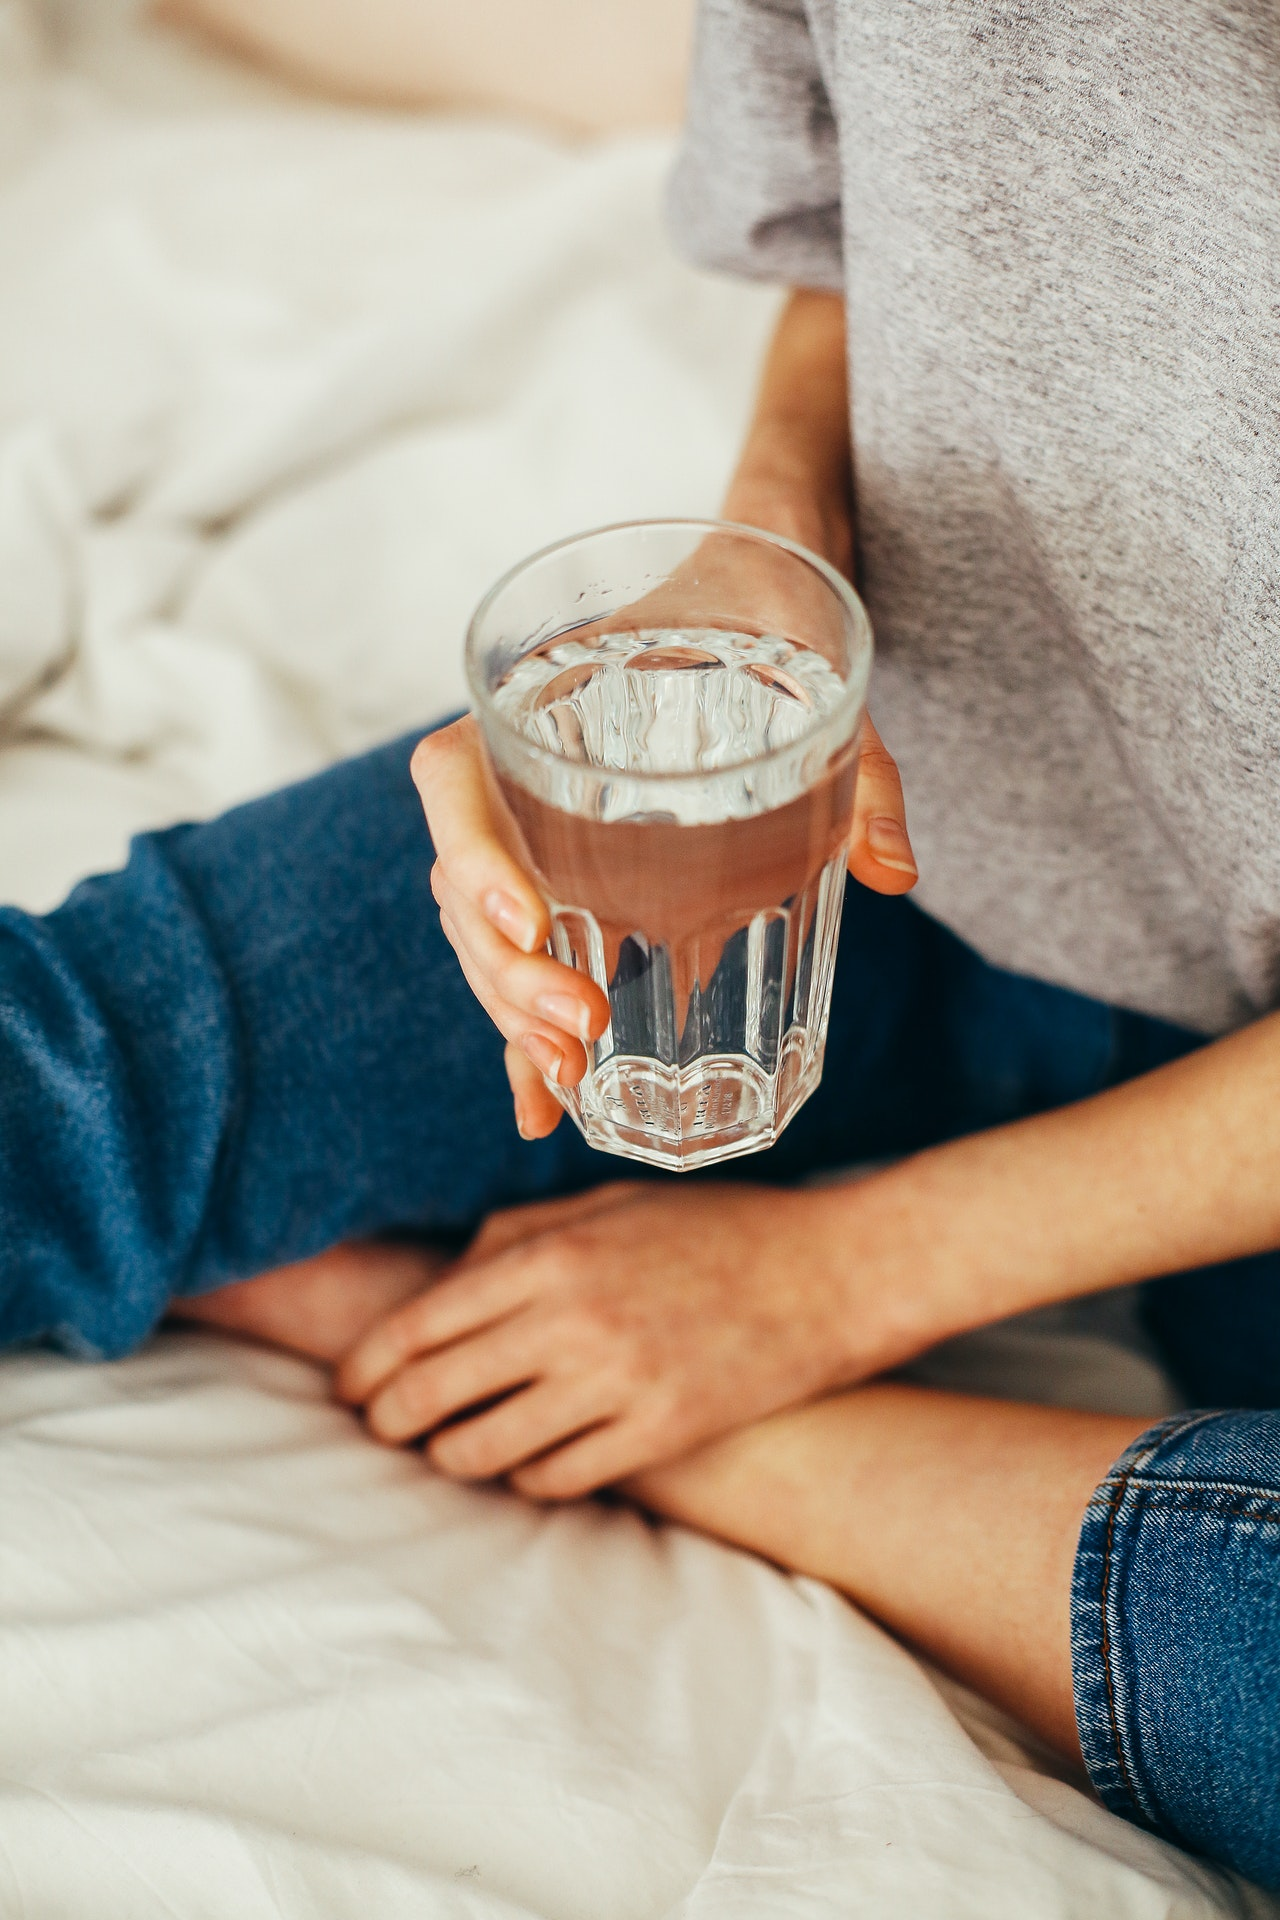 holding a glass of water